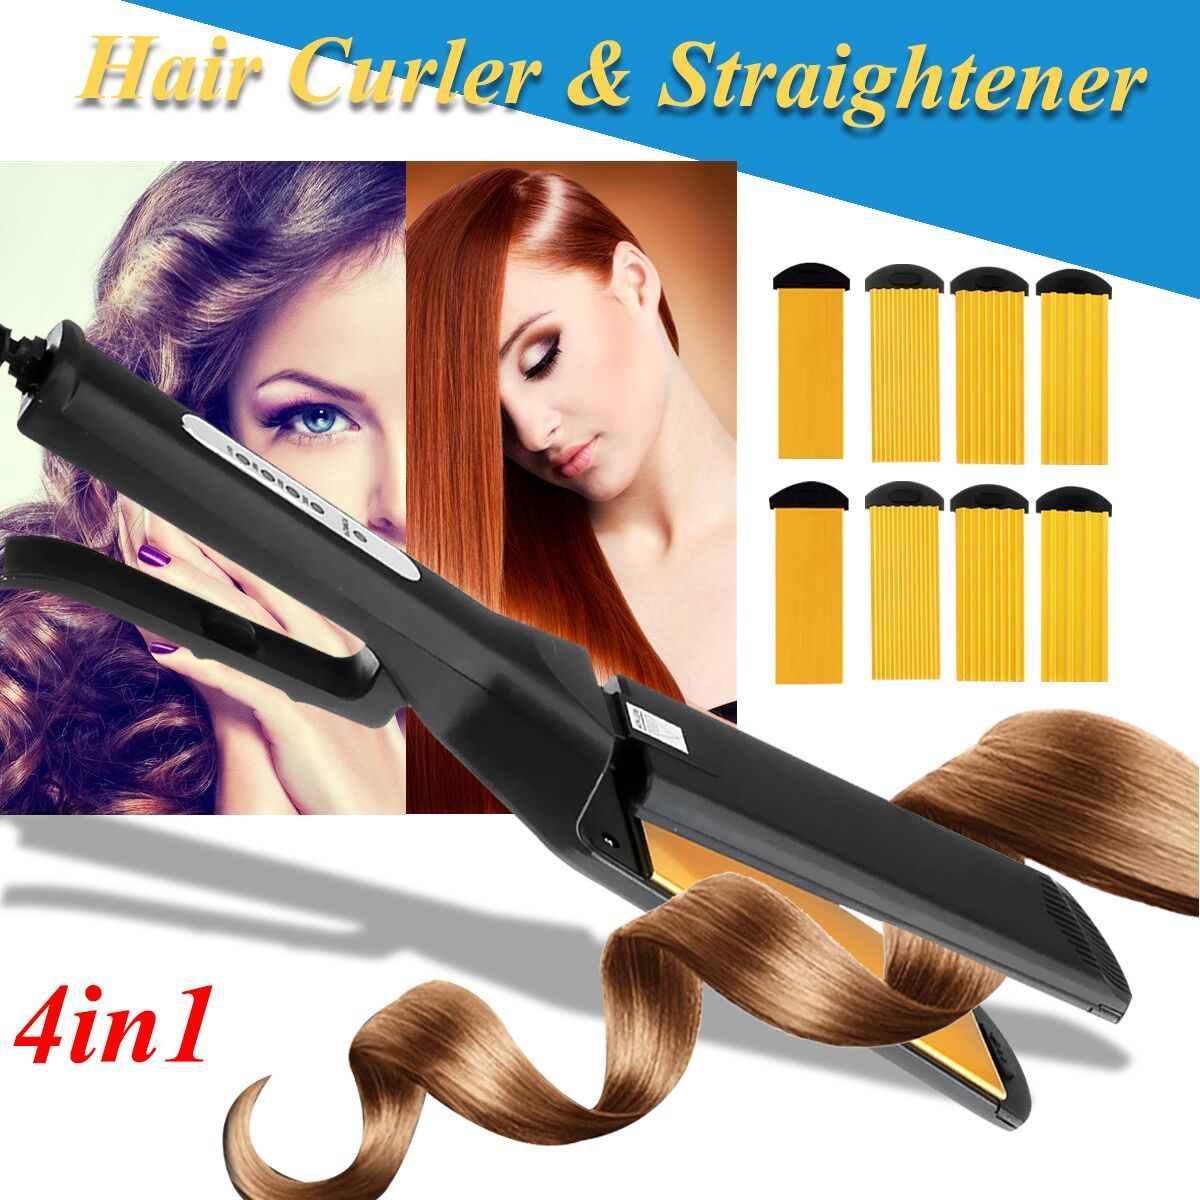 Professional 4 in 1 Hair Salon Ceramic Curling Styler Wave Straightener Curler Corn Wave Interchangeable Curling Irons Crimpers